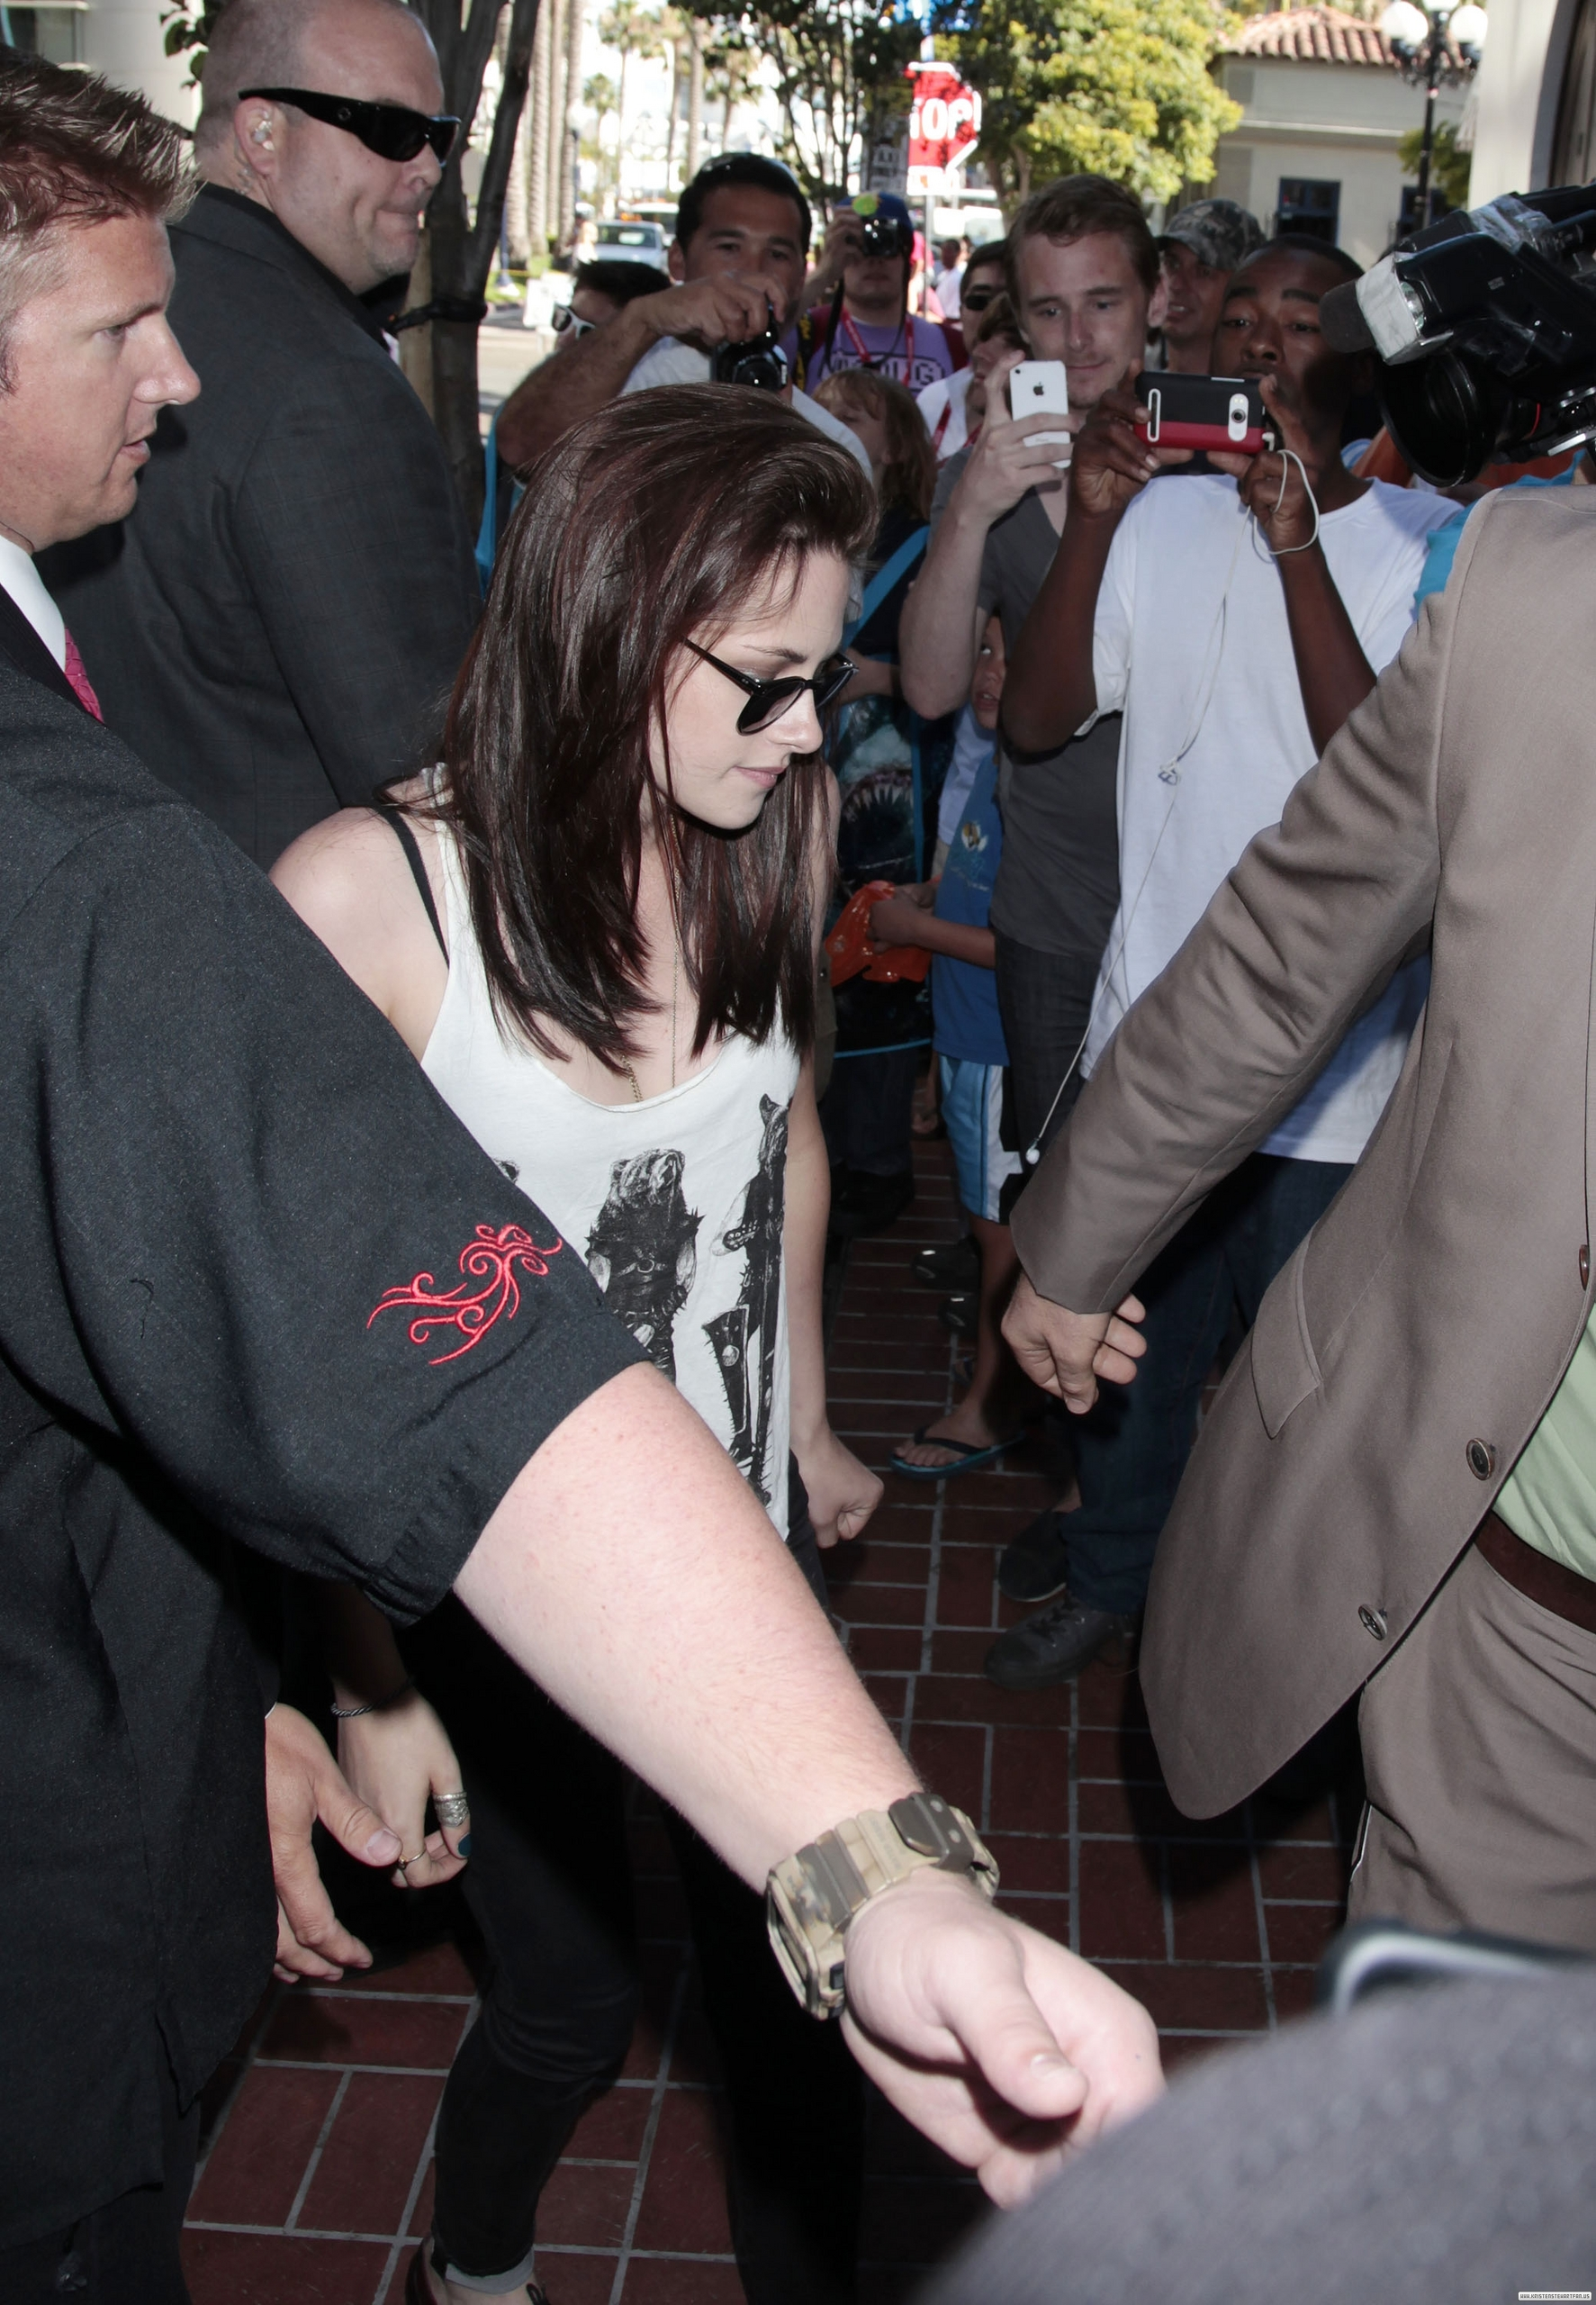 Kristen arriving at the Hard Rock Hotel in San Diego - July 23, 2011